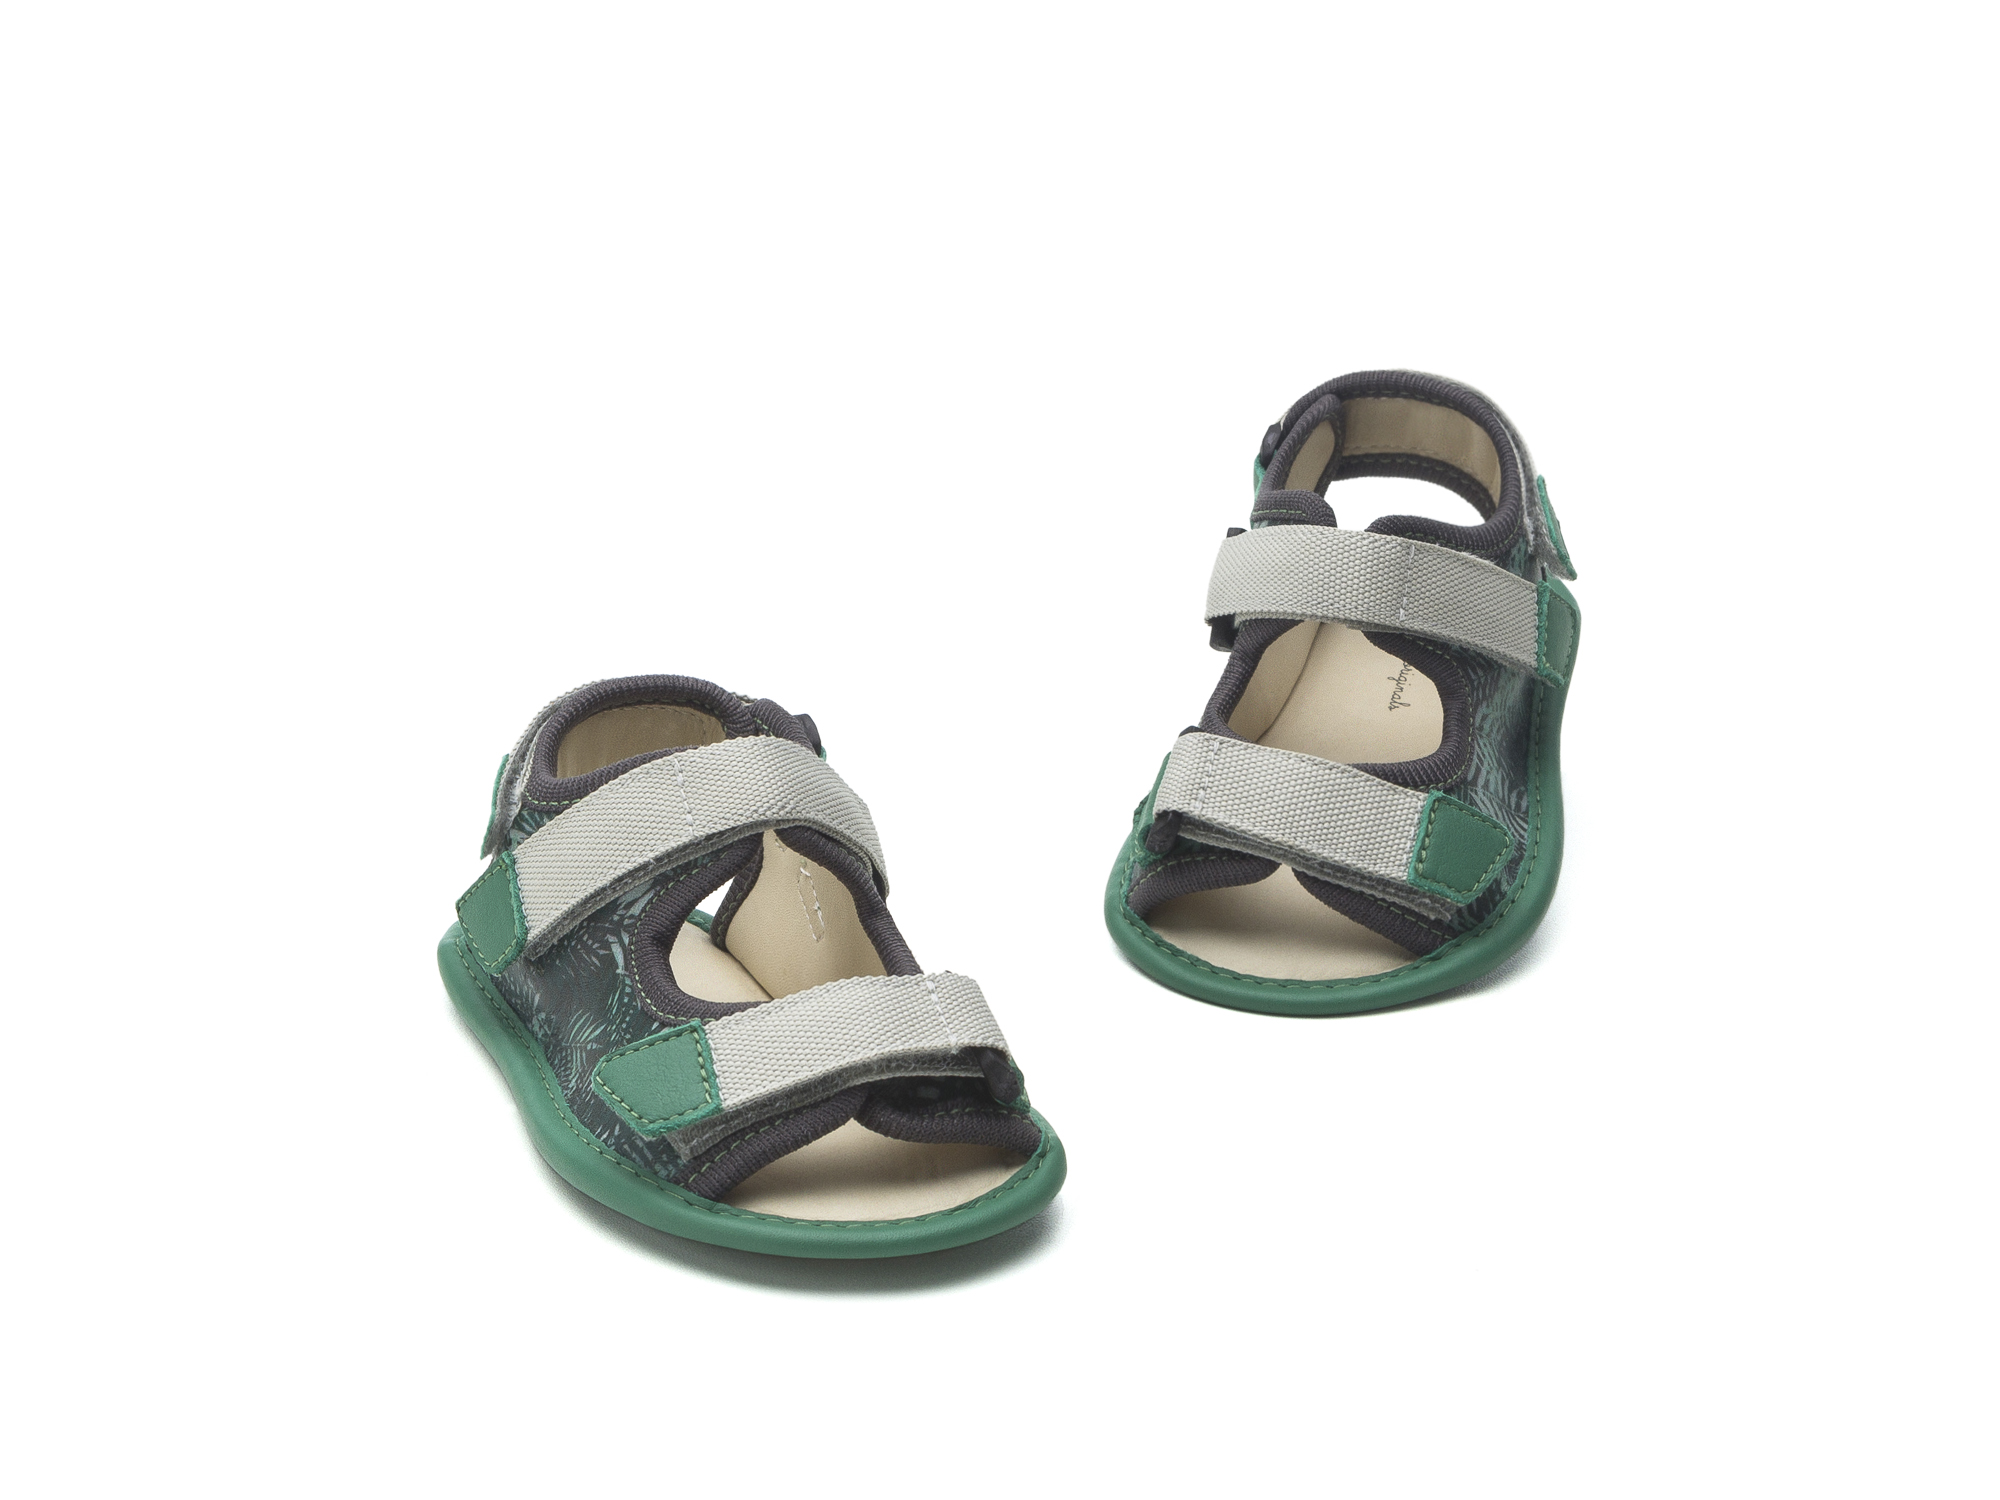 Sandal Boardy Green Palm/ Green Leaf Baby for ages 0 to 2 years - 2